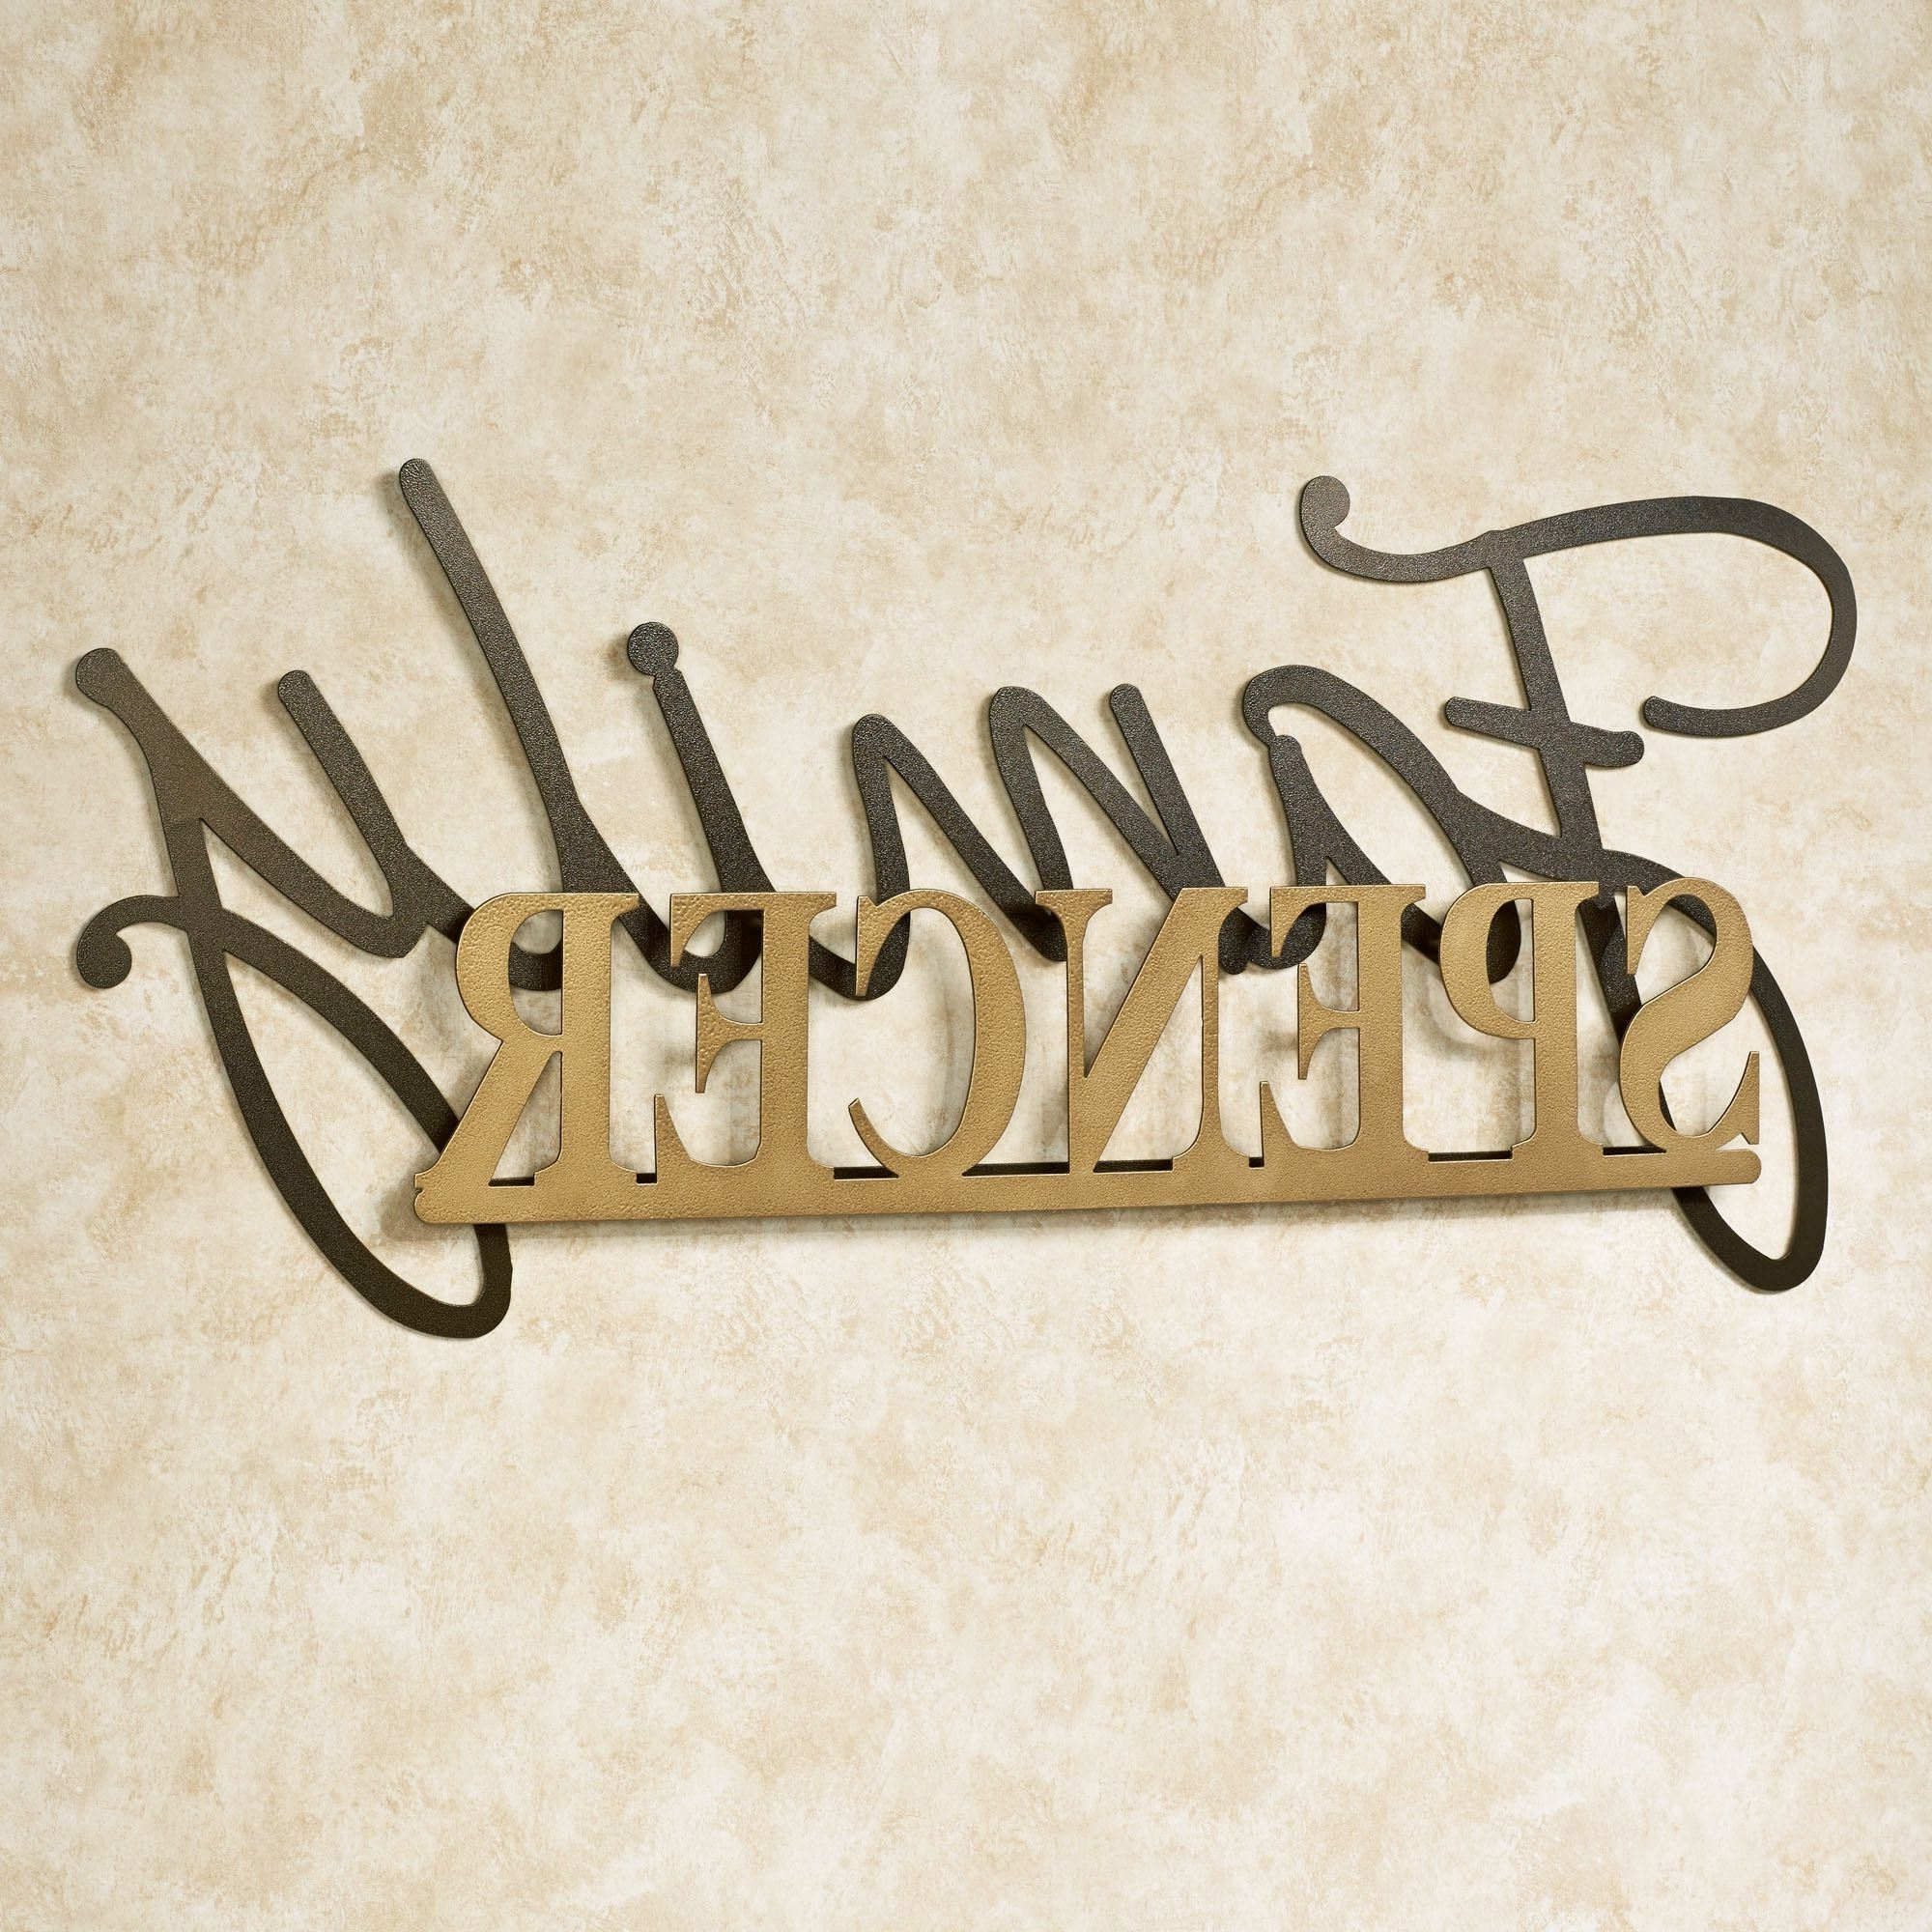 Best And Newest Signature Personalized Metal Wall Art Signjasonw Studios With Personalized Metal Wall Art (View 1 of 20)